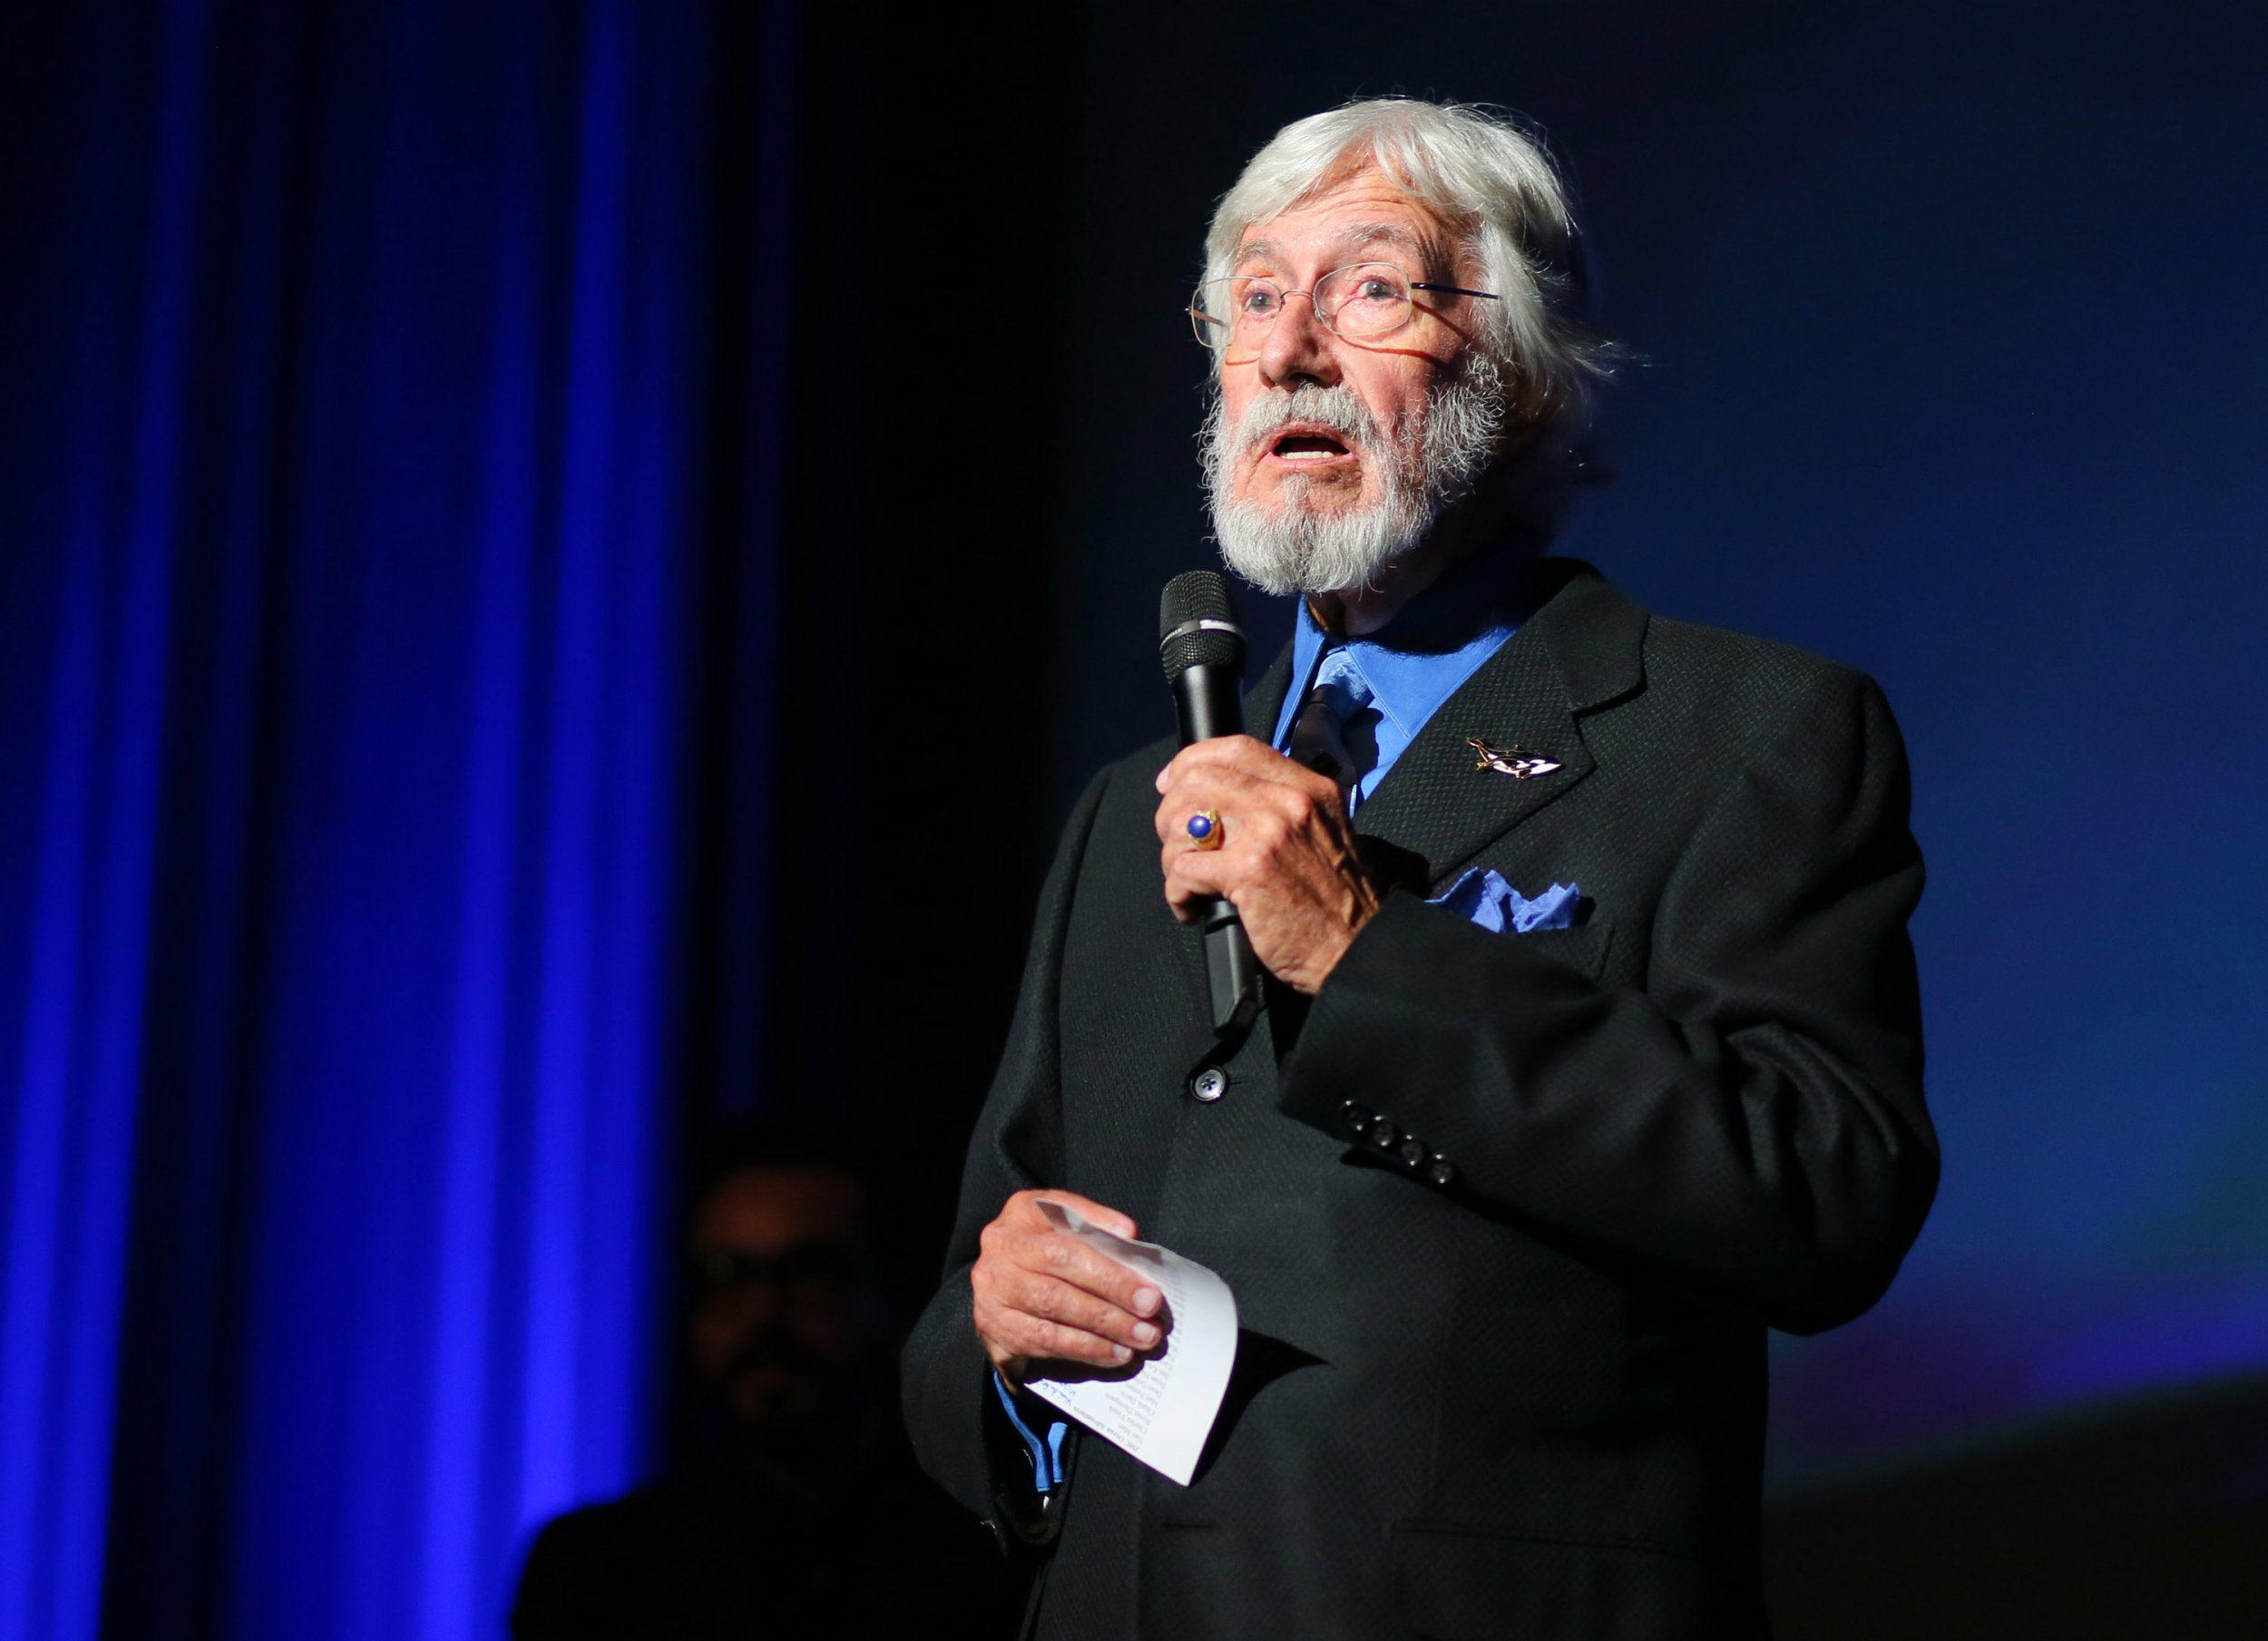 Jean-Michel Cousteau on releasing orcas